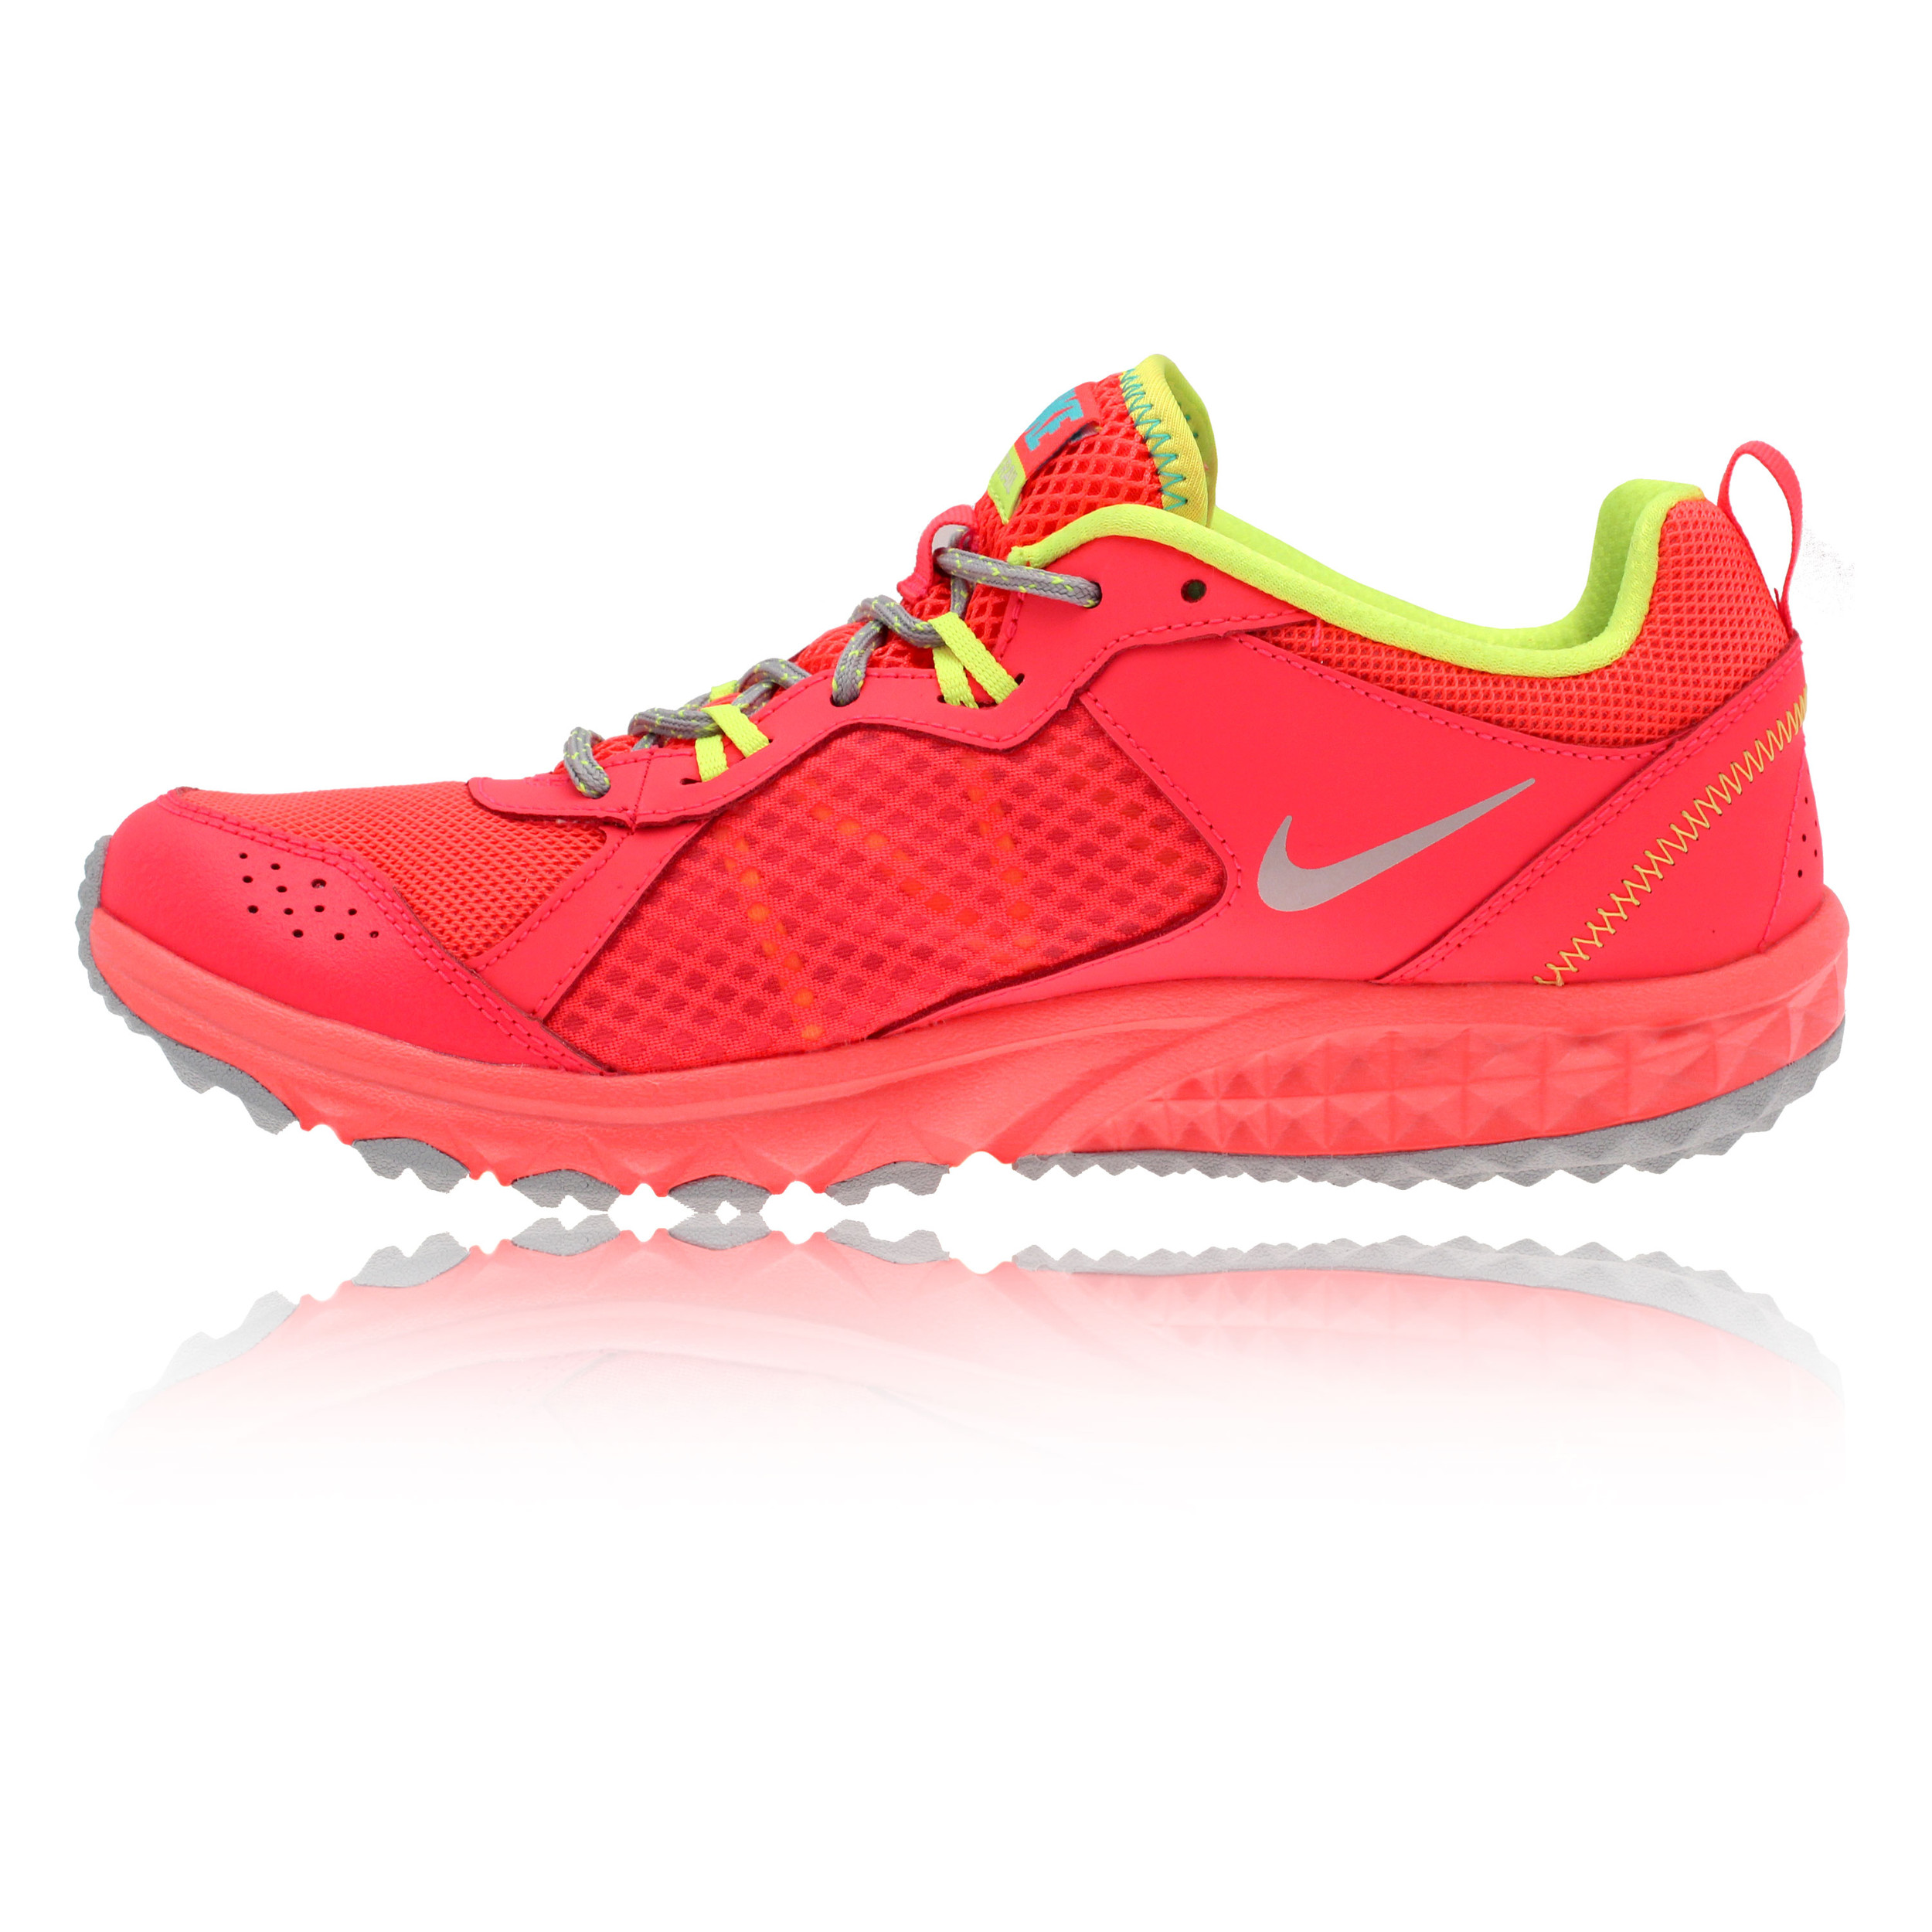 Lastest Nike Dual Fusion Womenu0026#39;s Trail Running Shoes - 50% Off | SportsShoes.com